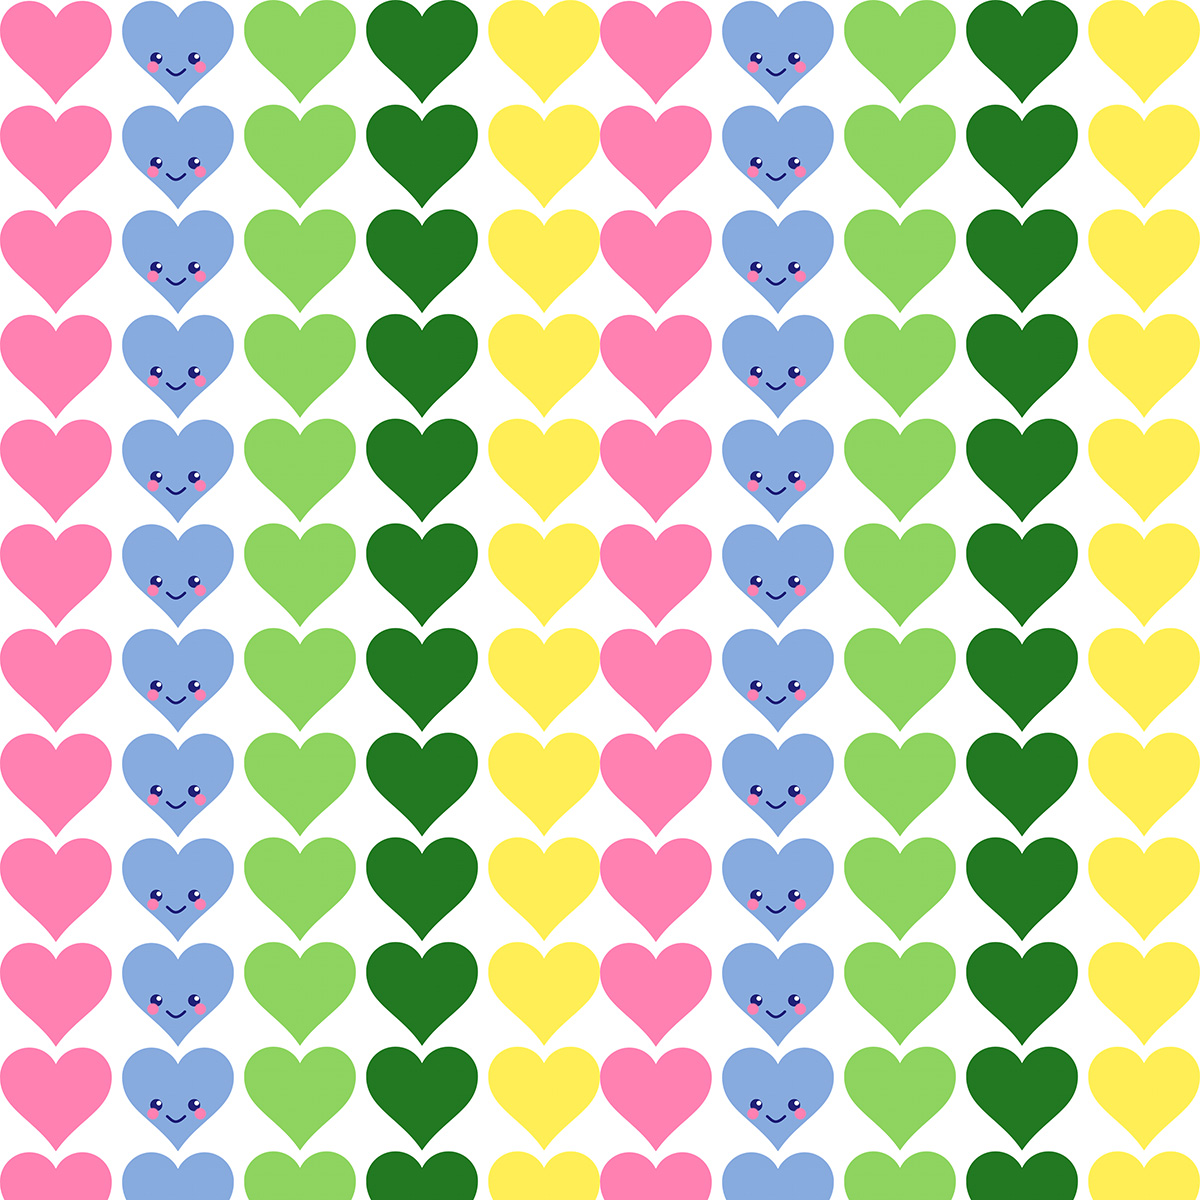 Cute Scrapbook Paper Patterns heart scrapbooking paper